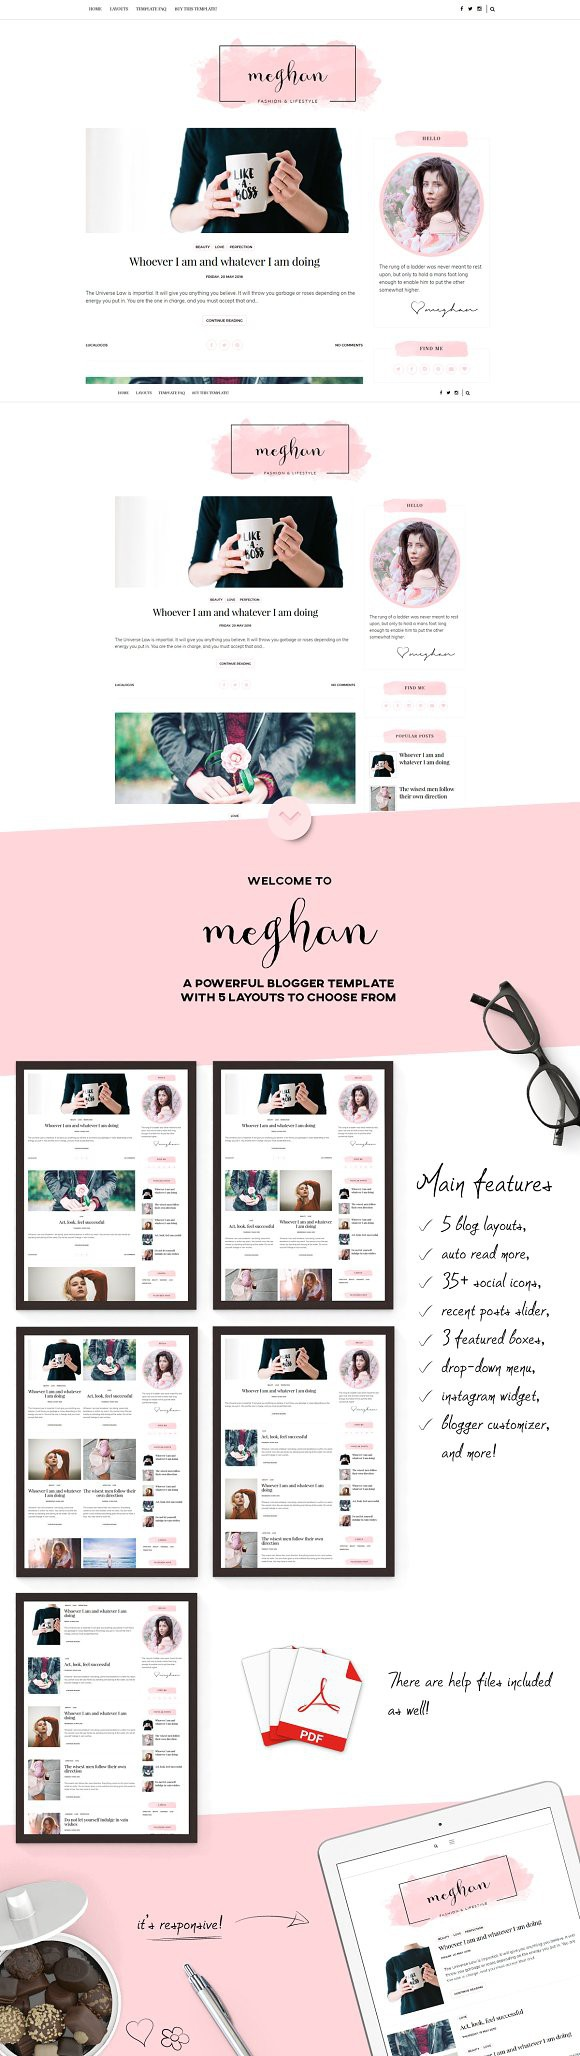 Comfortable Girly Website Templates Photos - Entry Level Resume ...